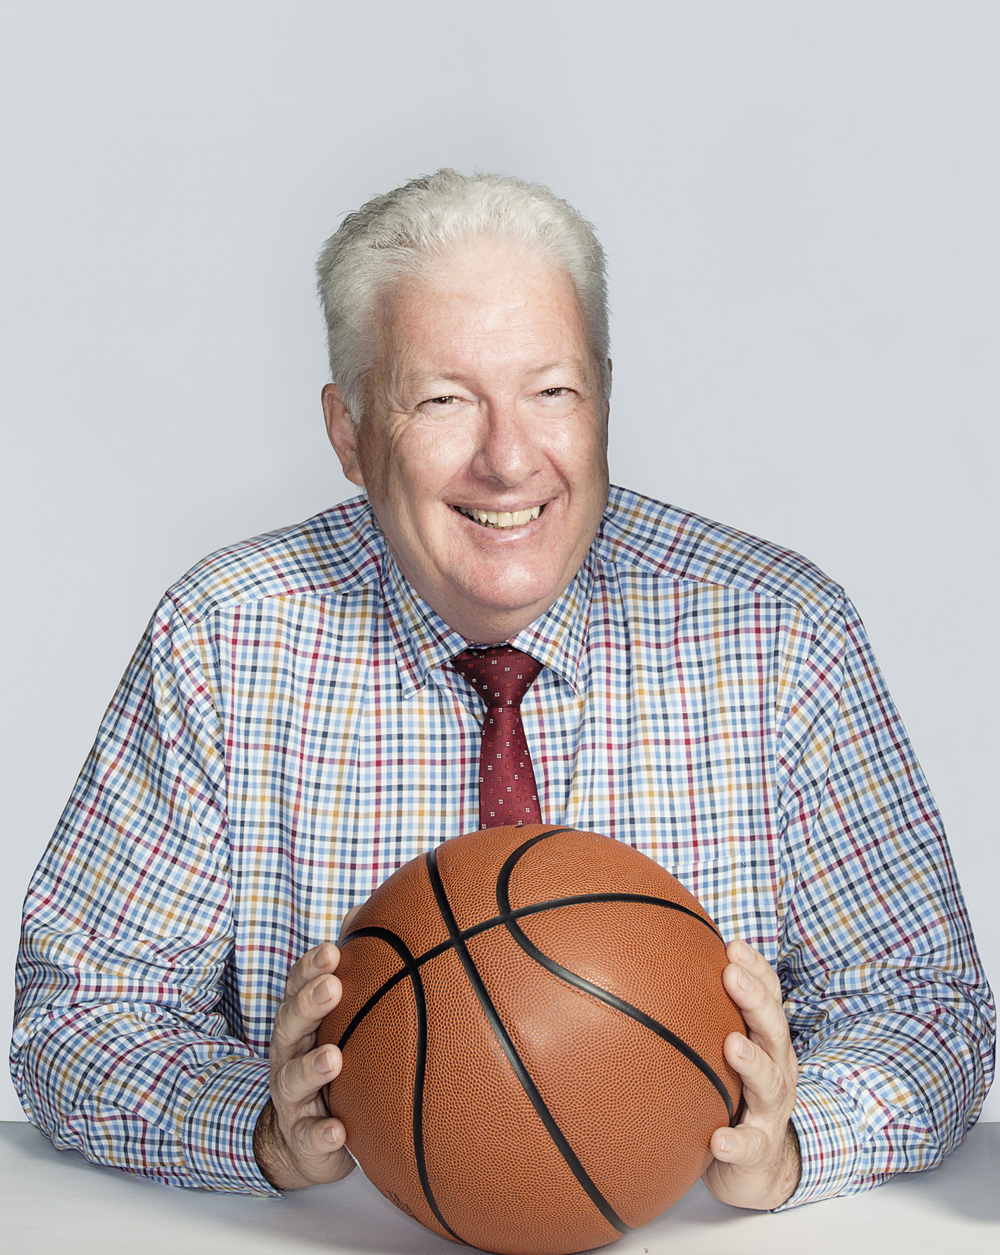 Portrait of Neil Kegie with a basketball